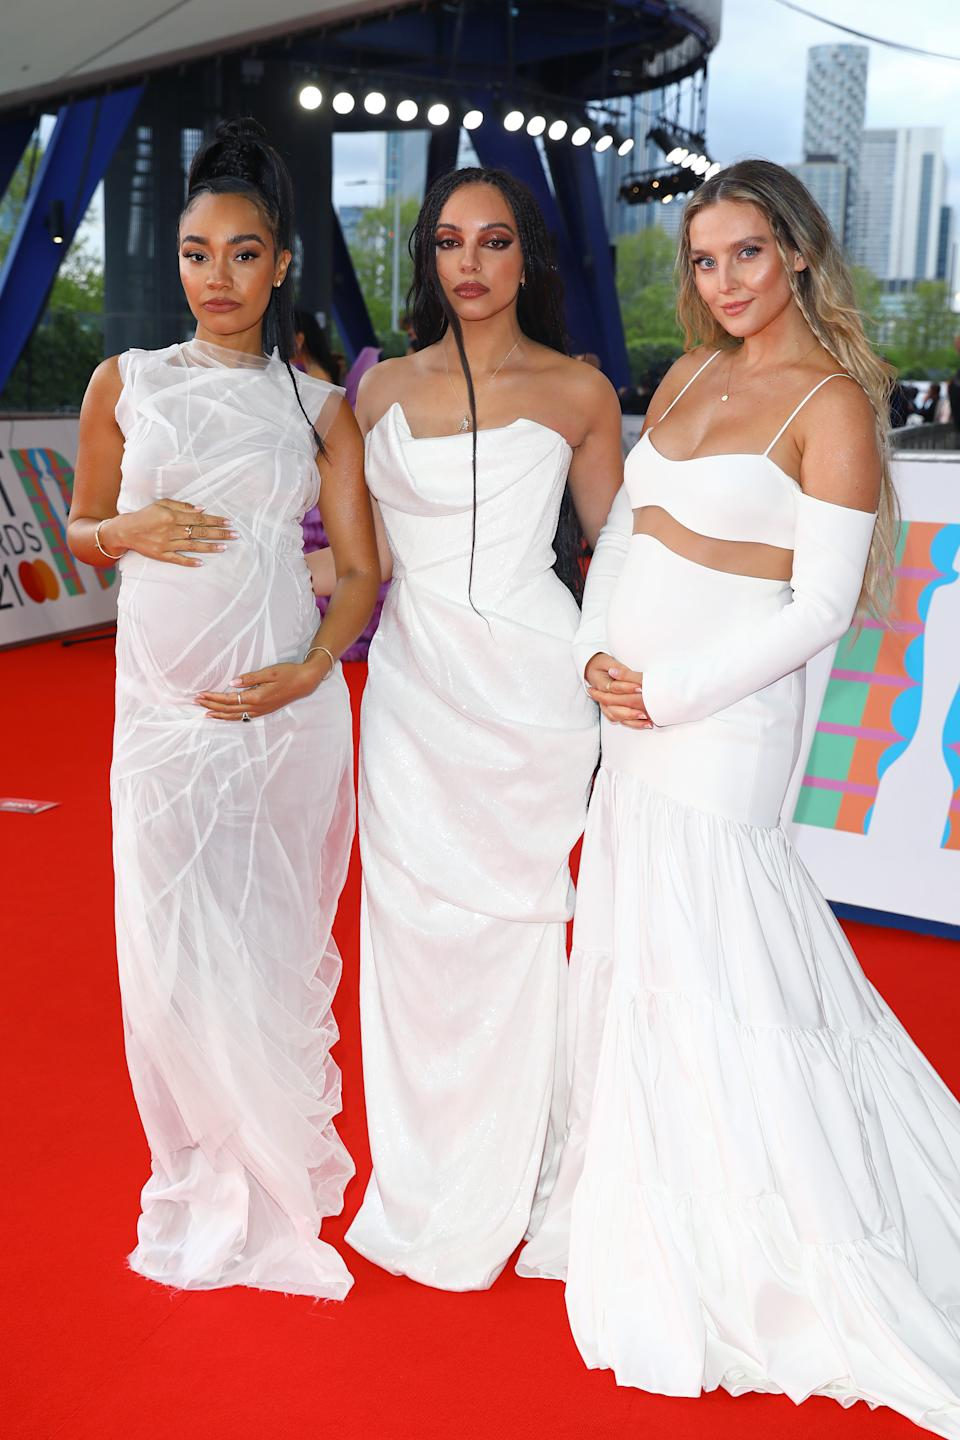 -Anne Pinnock, Jade Thirlwall and Perrie Edwards of Little Mix arrive at The BRIT Awards 2021 at The O2 Arena on May 11, 2021 in London, England. (Photo by JMEnternational/JMEnternational for BRIT Awards/Getty Images)